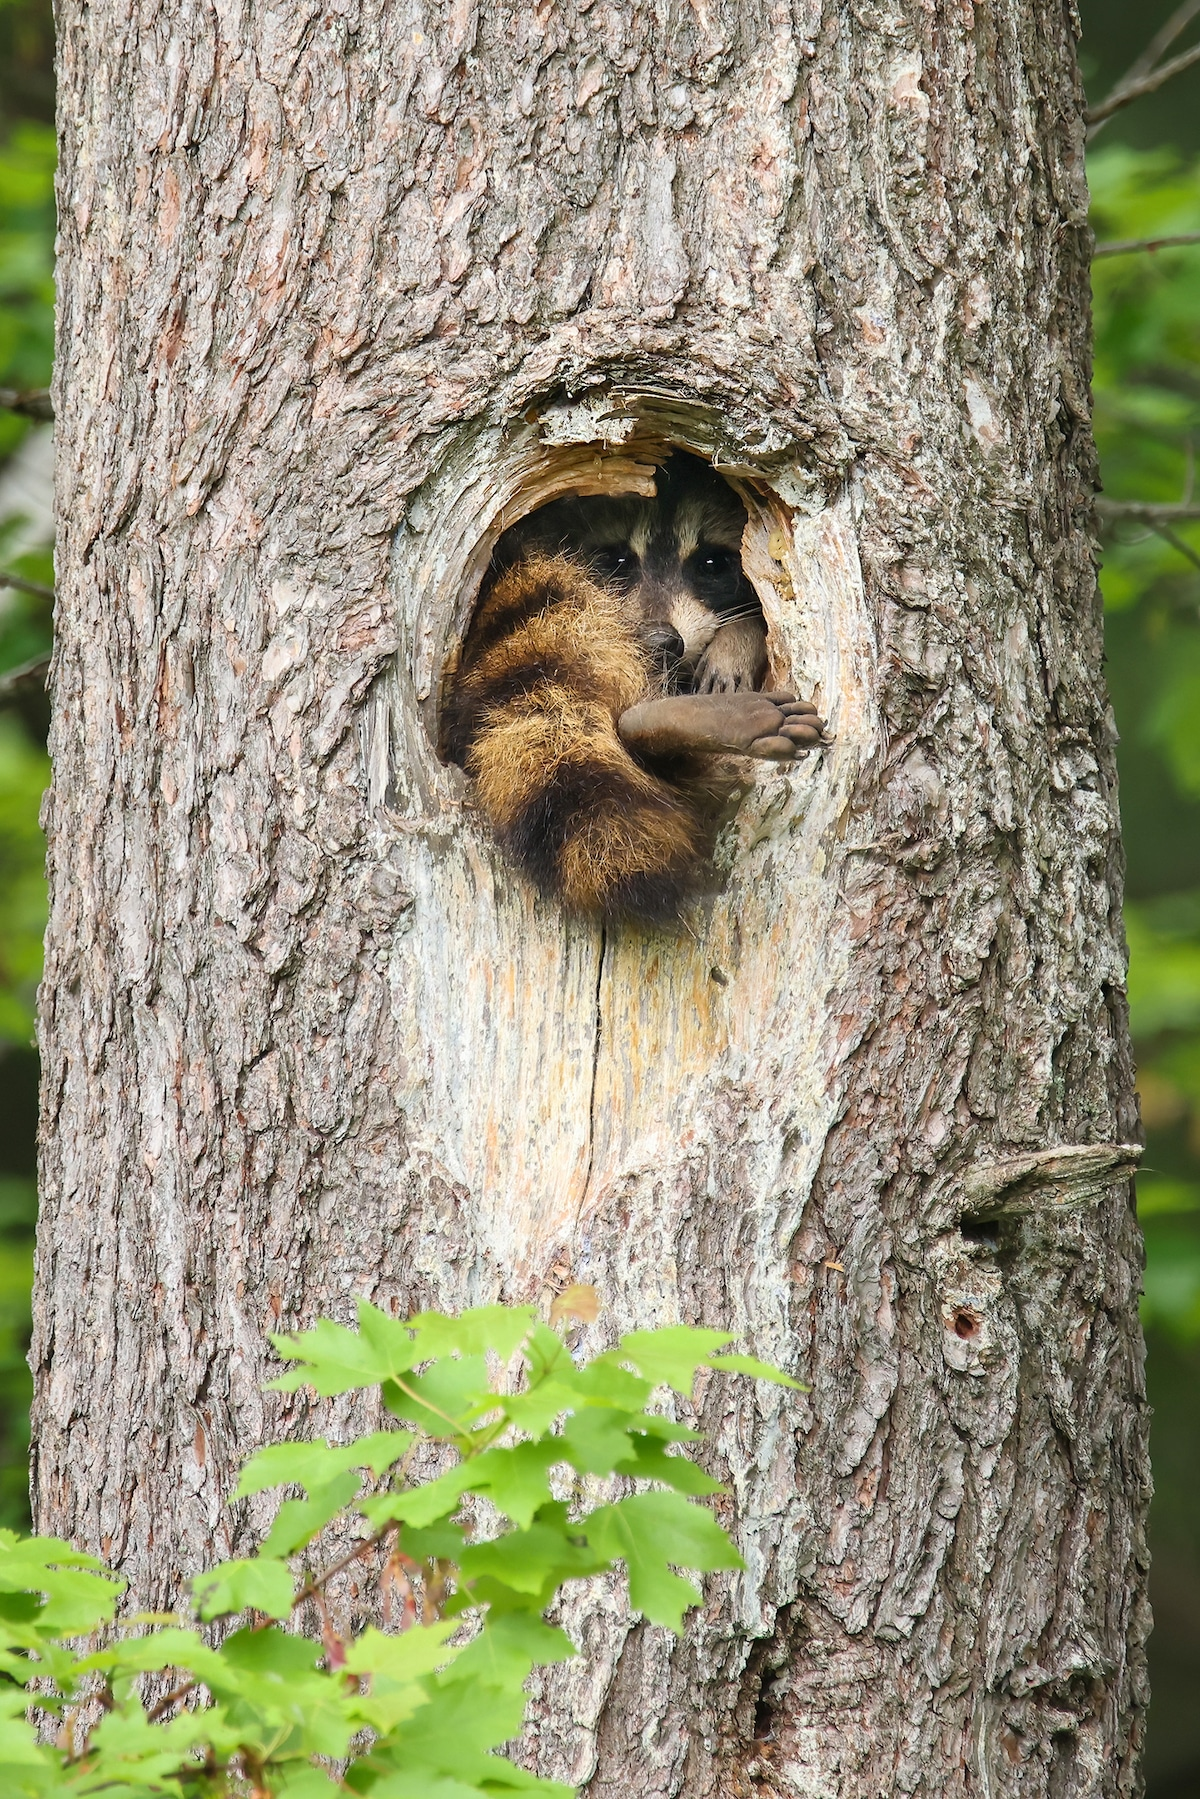 Raccoon Sticking Foot Out of Hole in a Tree